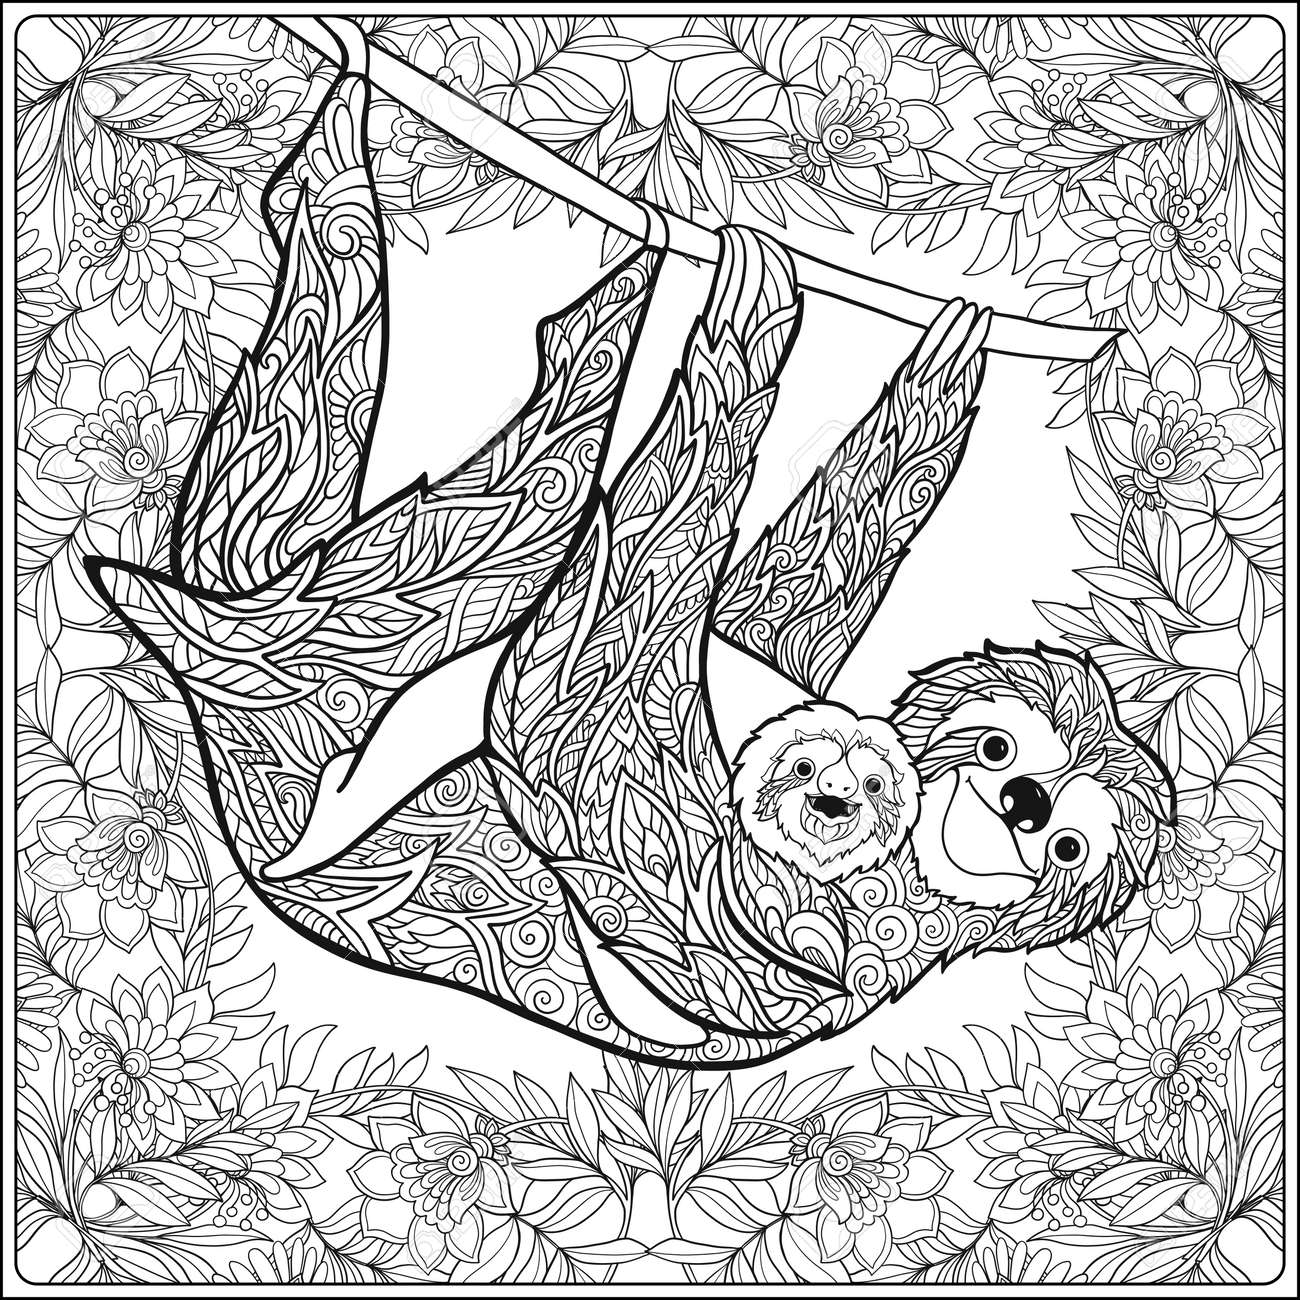 - Coloring Page With Lovely Sloth In Forest. Coloring Book For